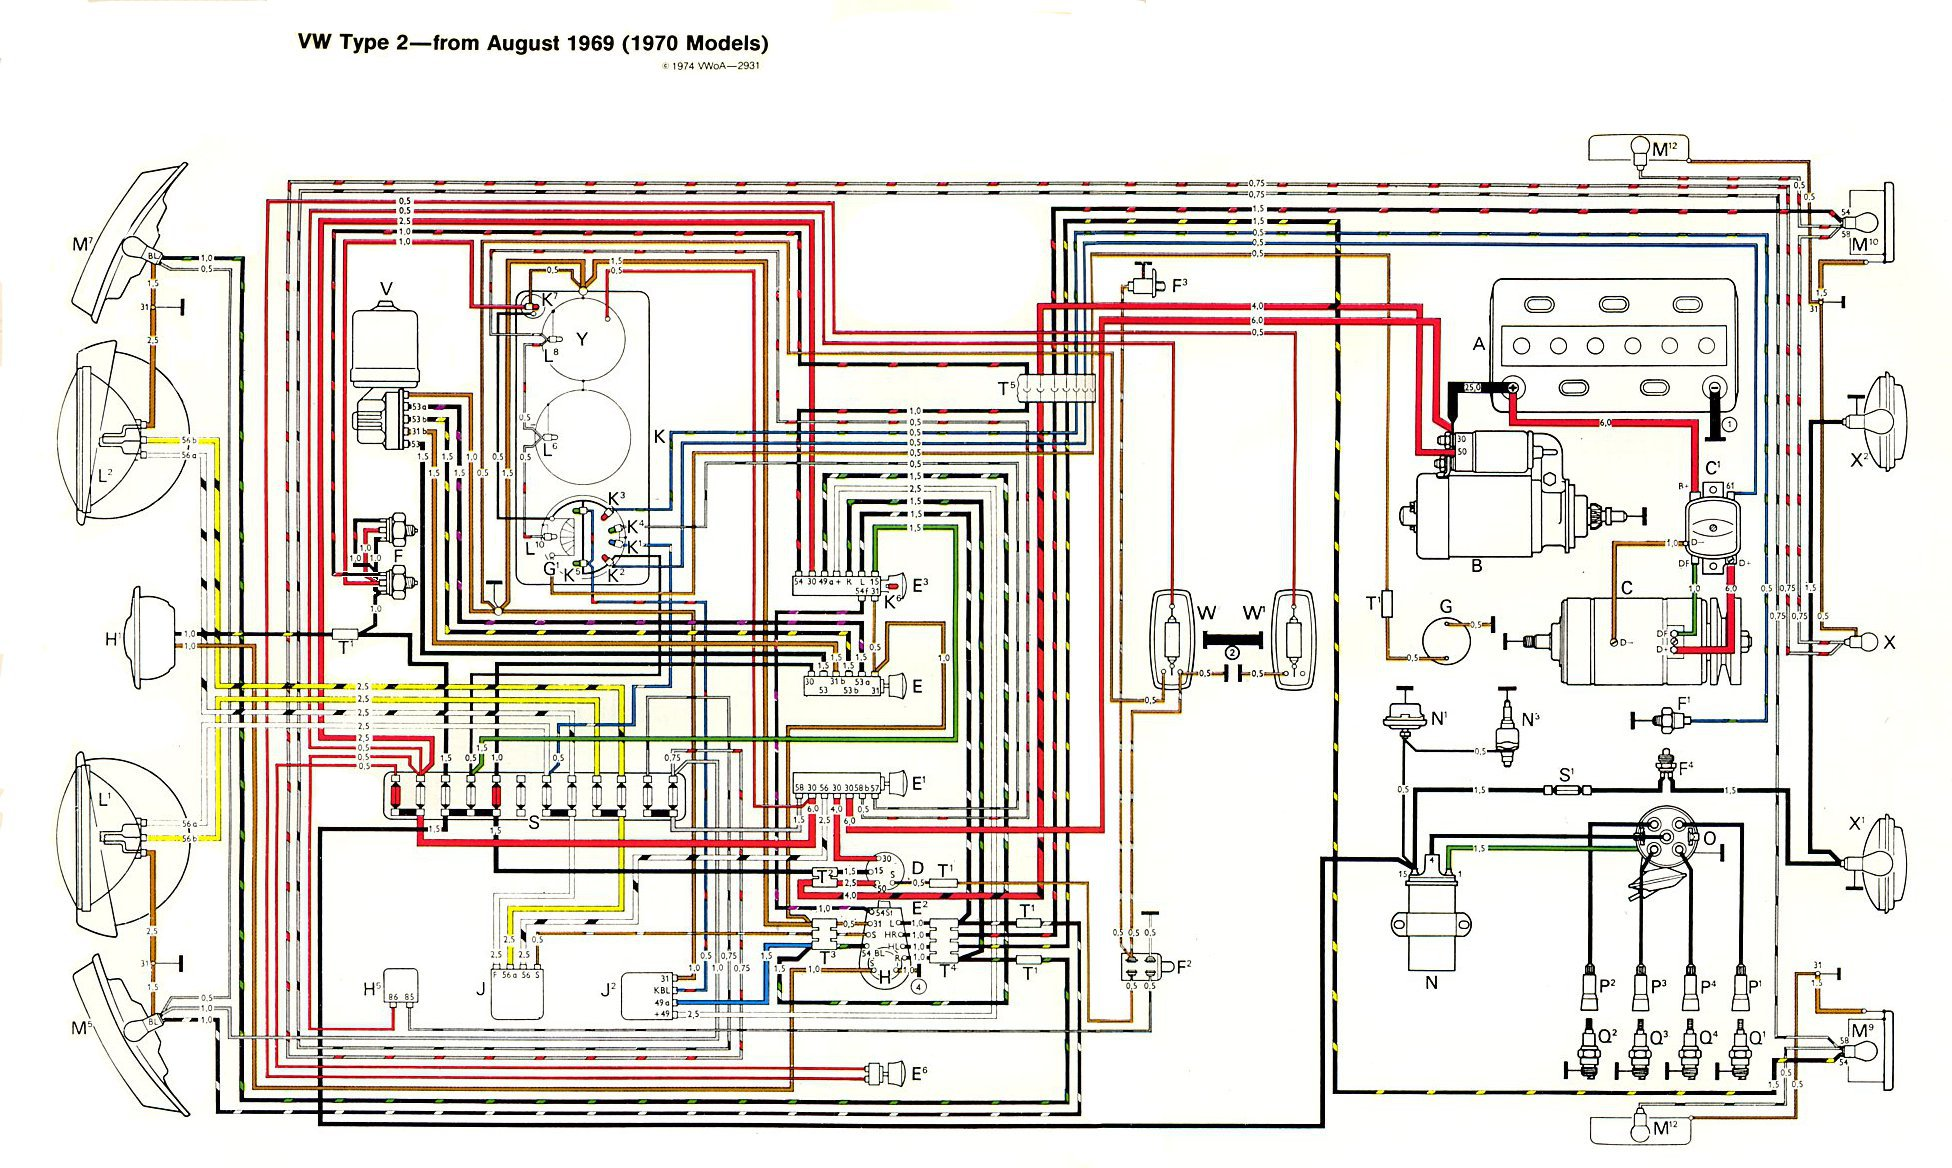 1977 vw beetle parts diagrams with Wiringt2 on 1978 Chevy Wiper Motor Wiring as well 72 Torino Wiring Diagram as well 1976 Corvette Engine Diagram additionally Diagram view additionally Wiringt2.